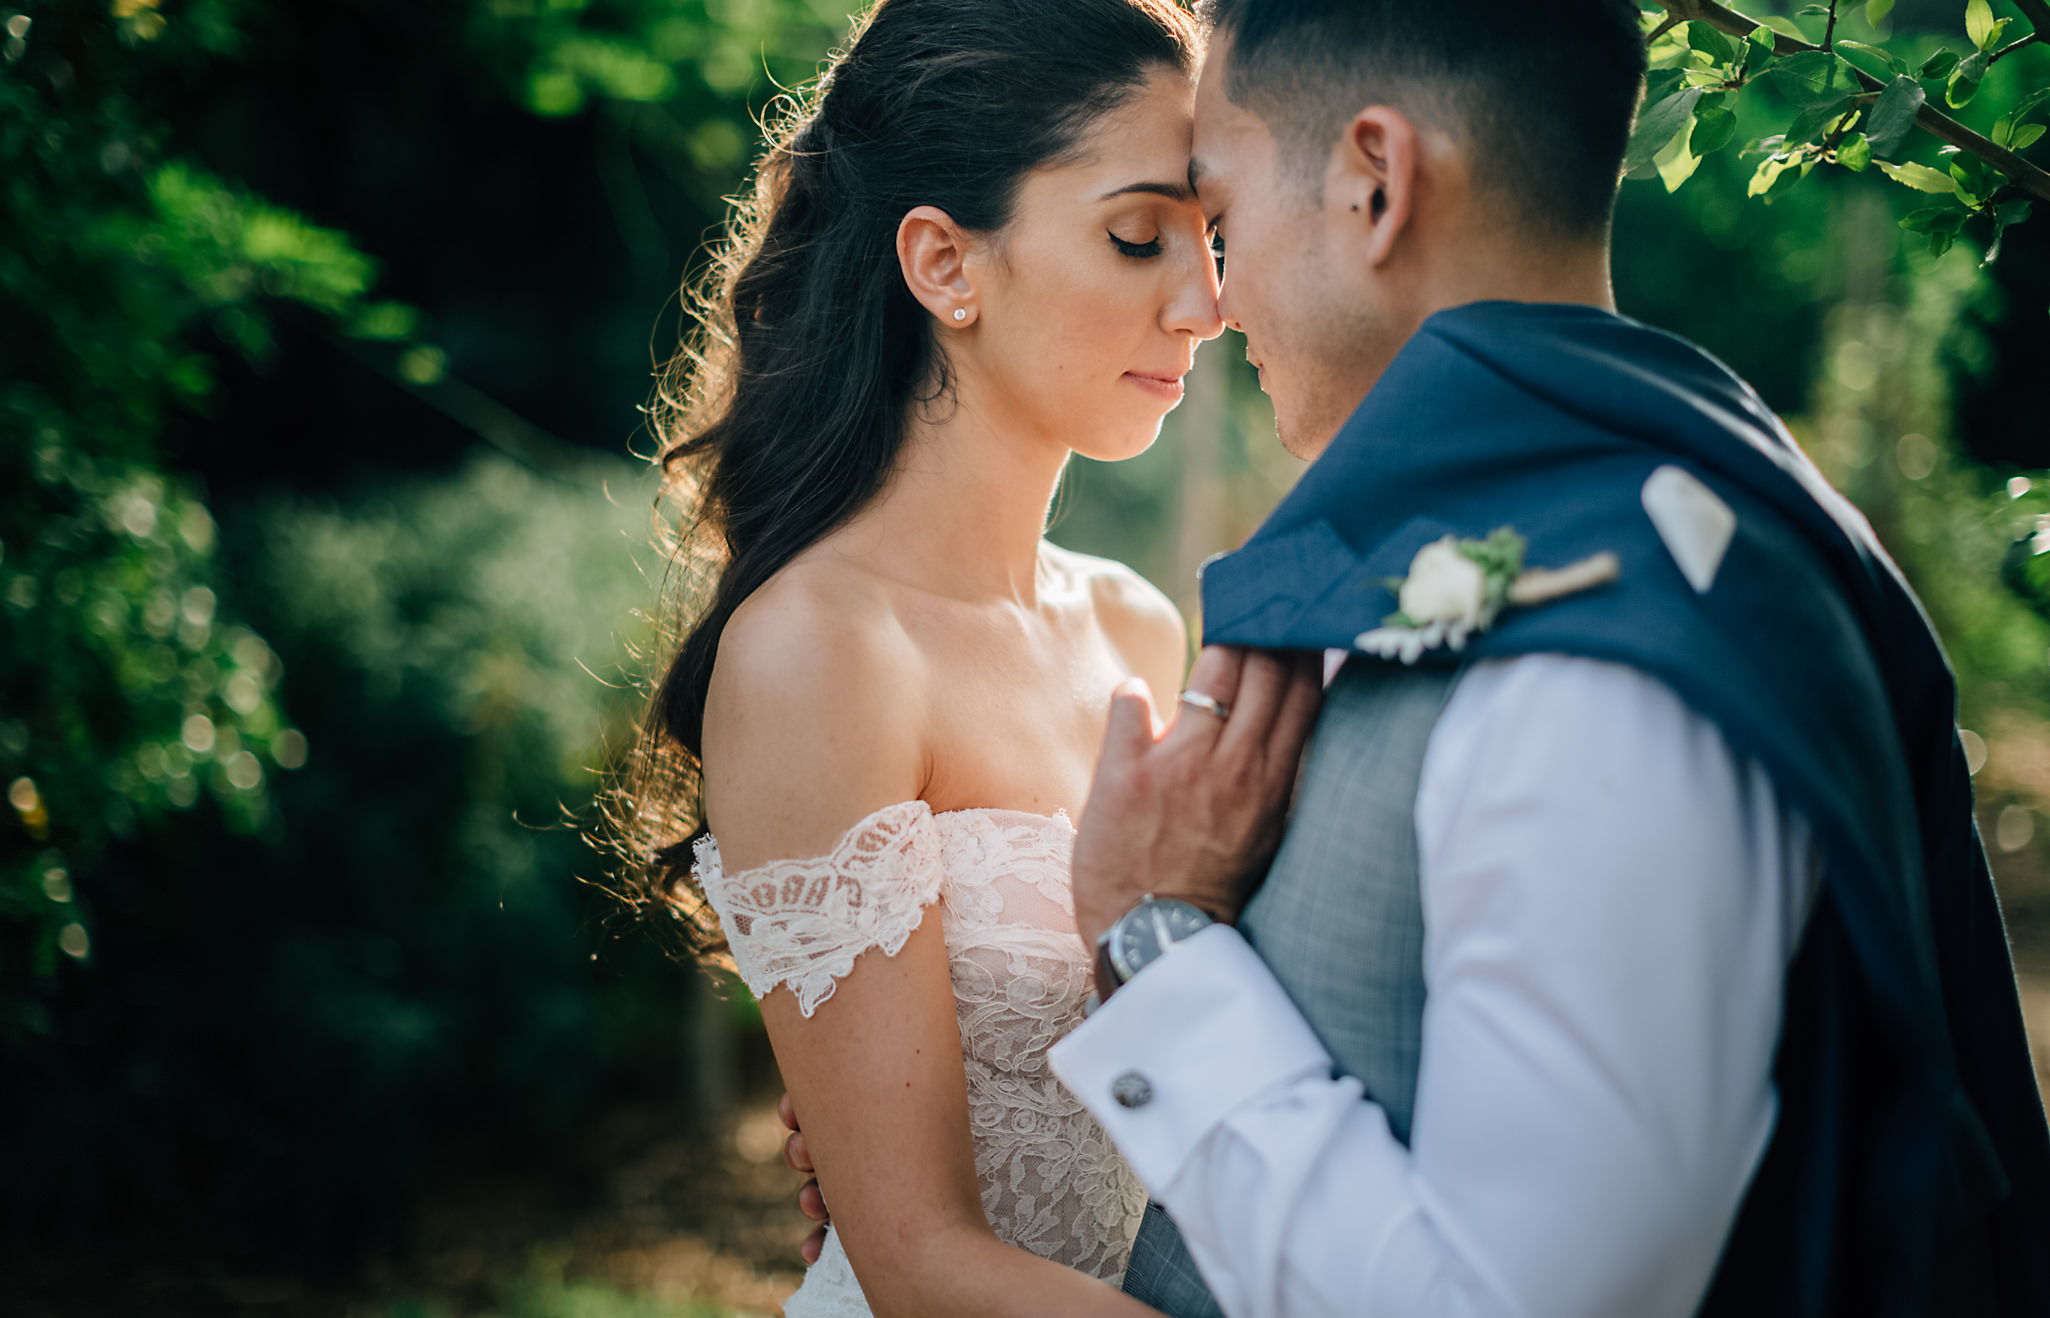 Yarra Valley Wedding Photography - Immerse WineryYarra Valley Wedding Photography - Immerse Winery